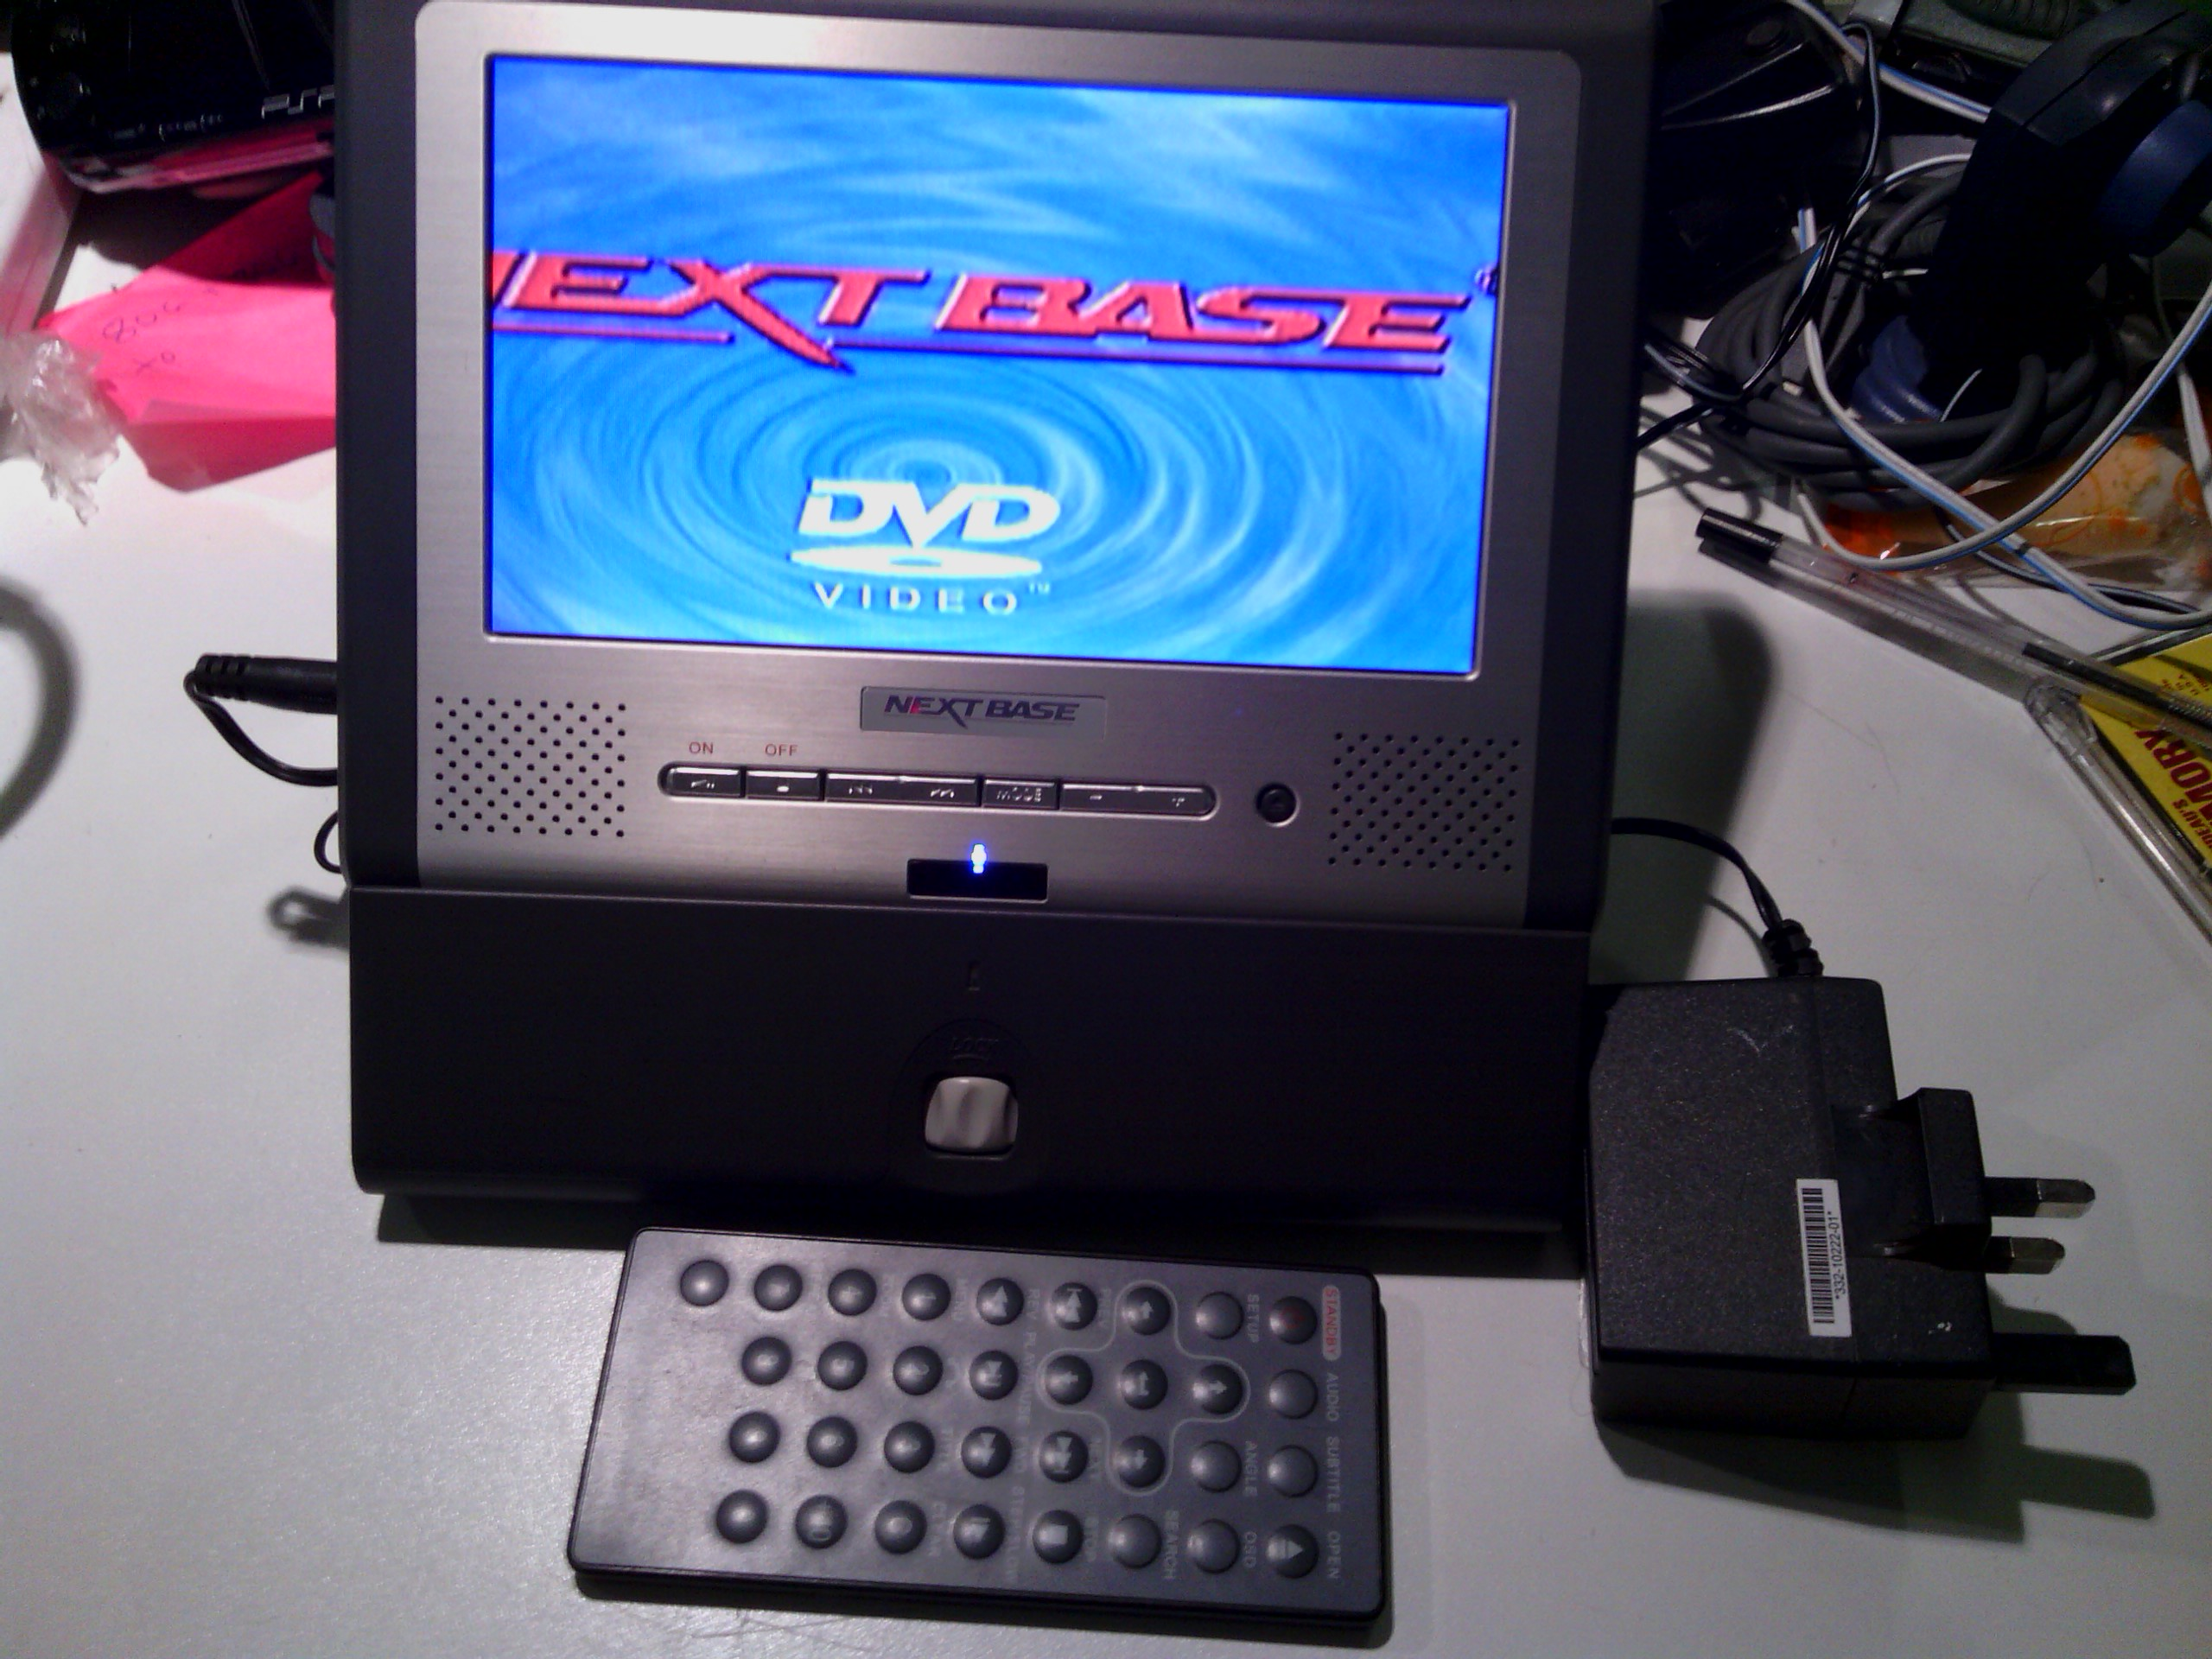 portable DVD player Next Base